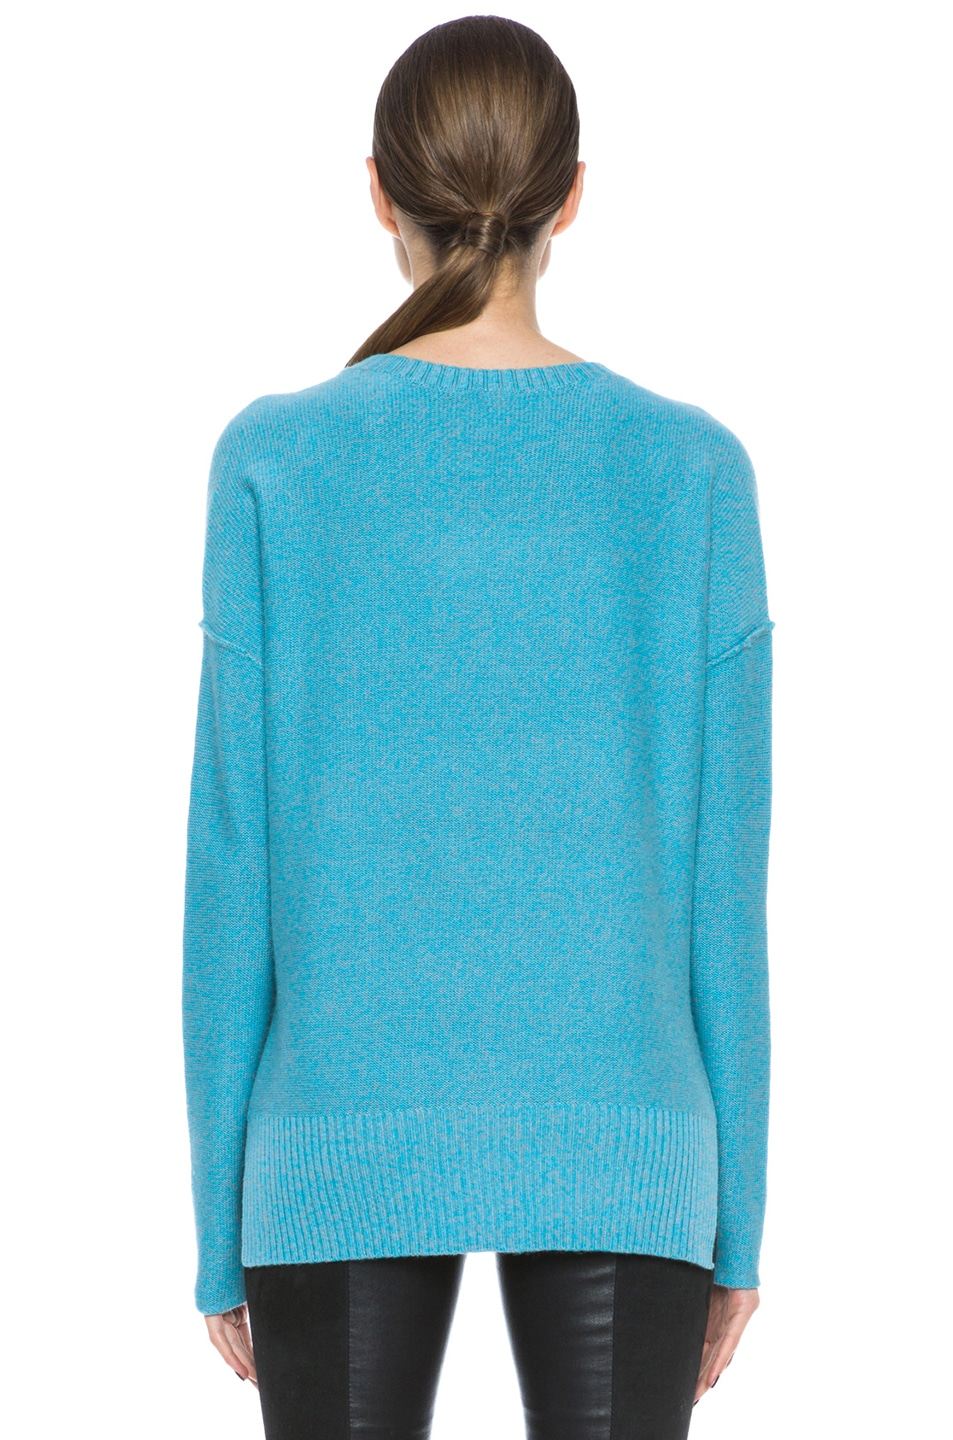 Image 4 of Tess Giberson Slouchy Split Hem Wool-Blend Sweater in Turqoise & Grey Melange